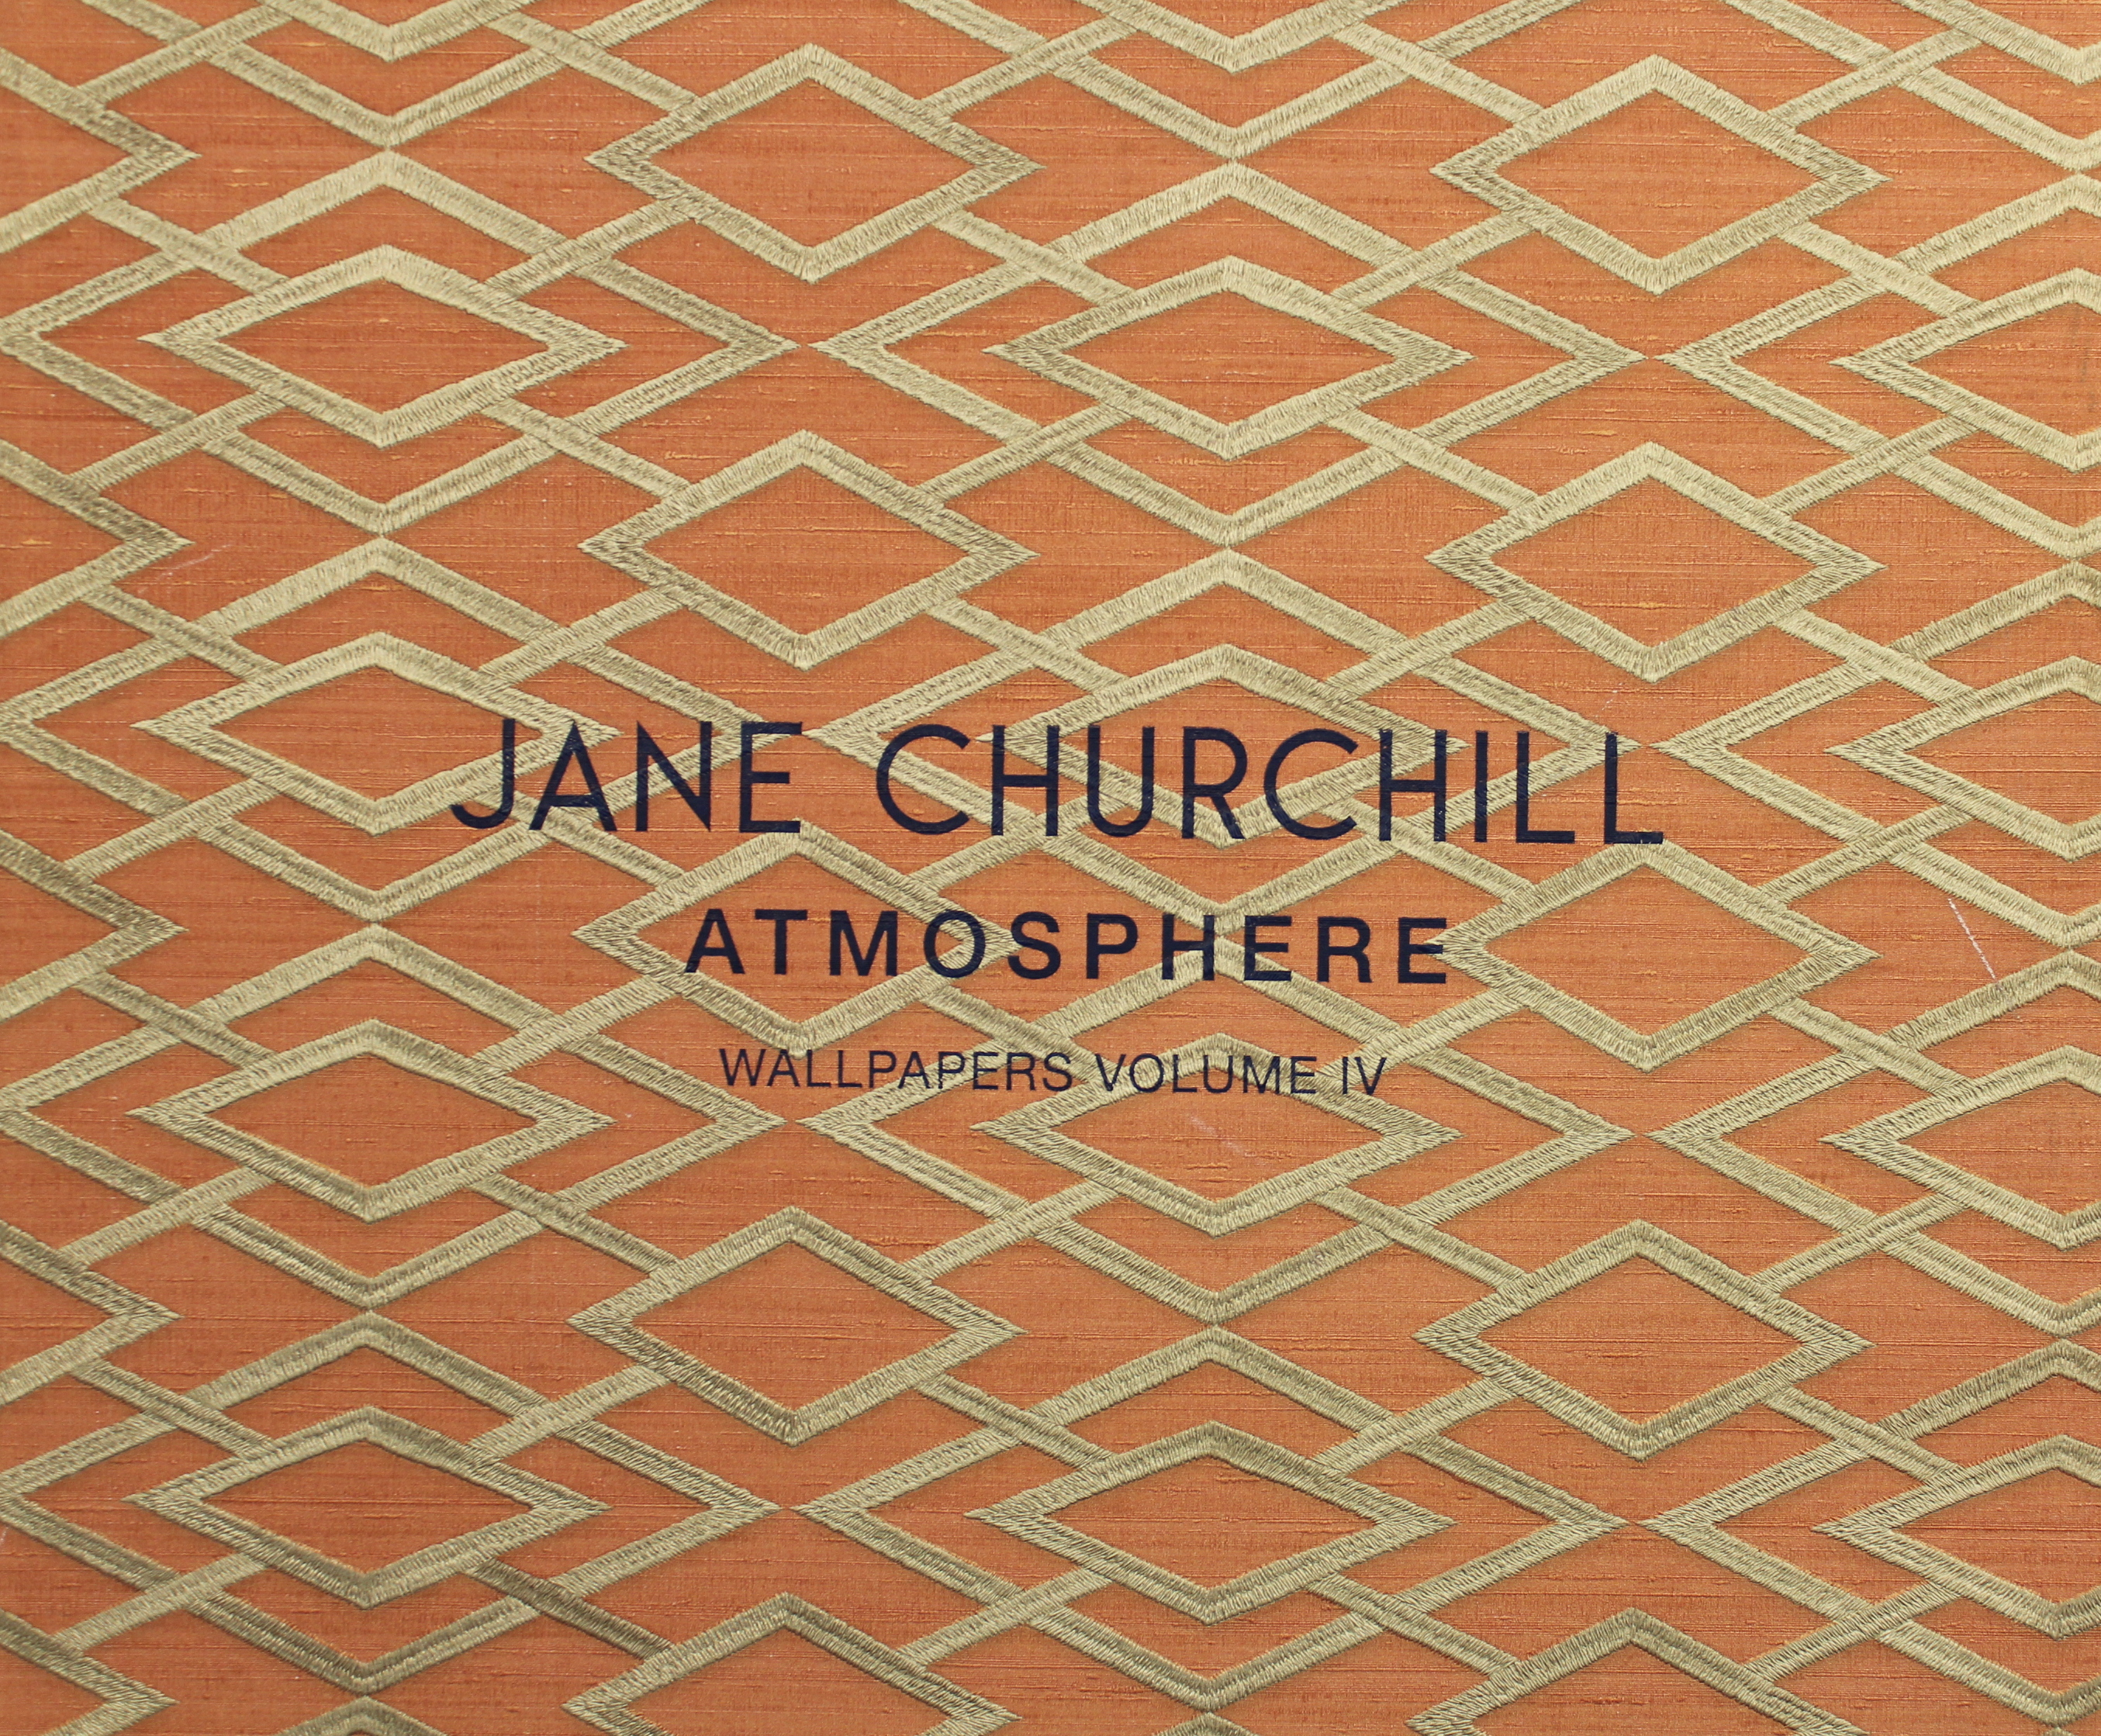 Jane Churchill Atmosphere IV